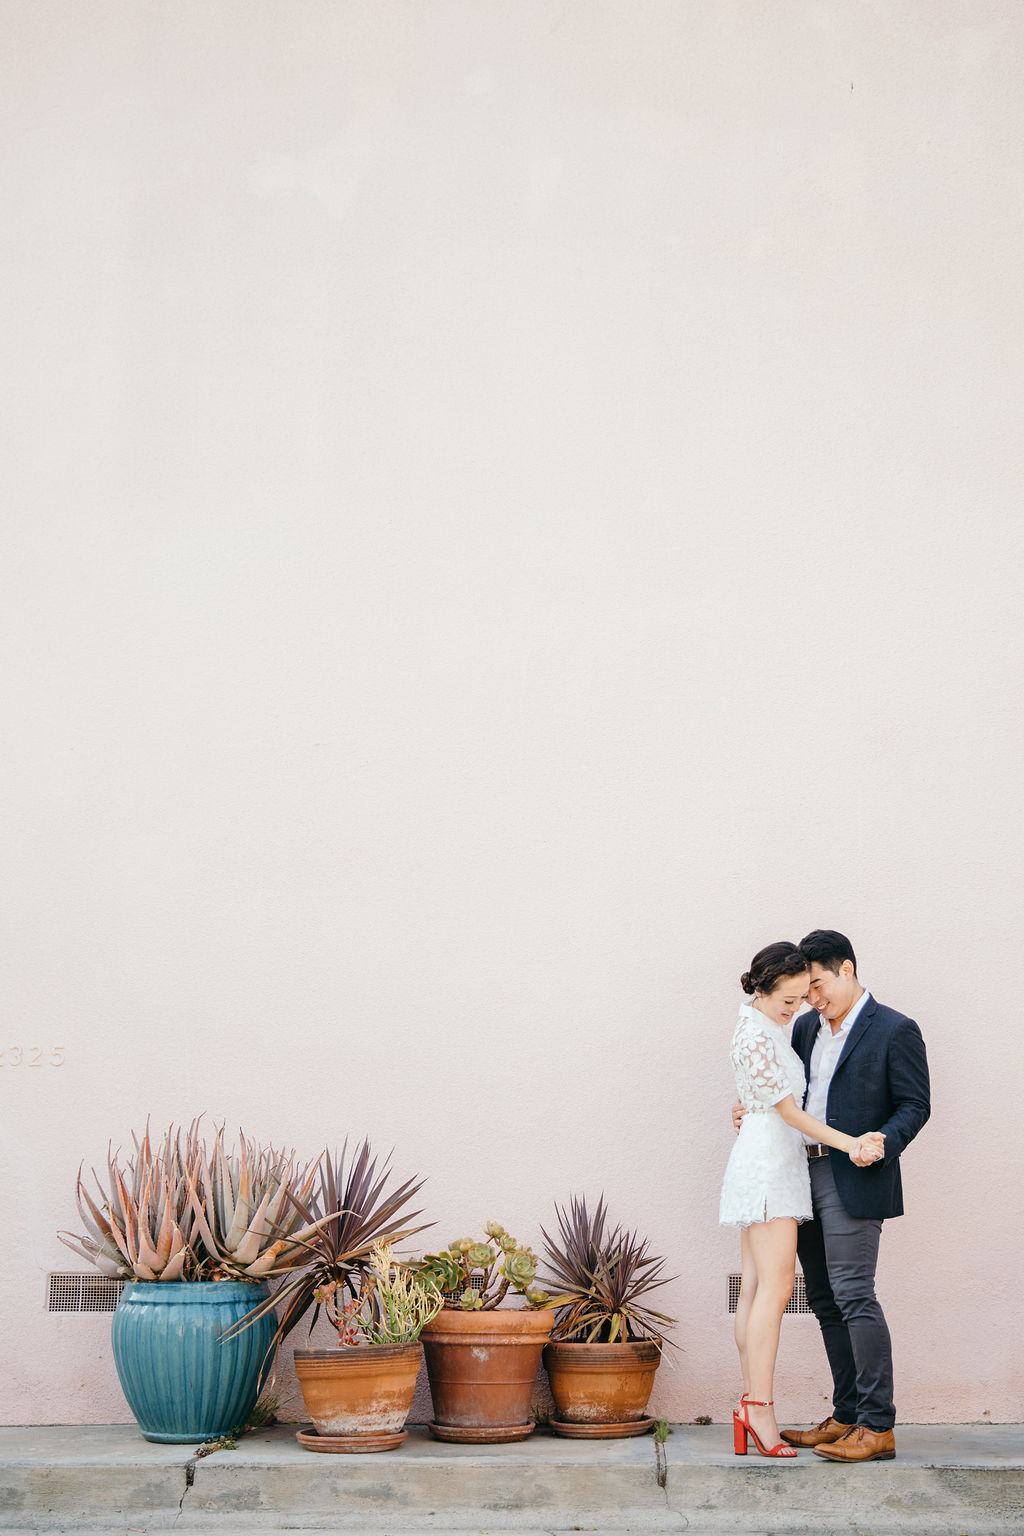 Venice Canals plants Engagement Photography 11 Los Angeles Orange County Wedding Photographer Joy Theory Co